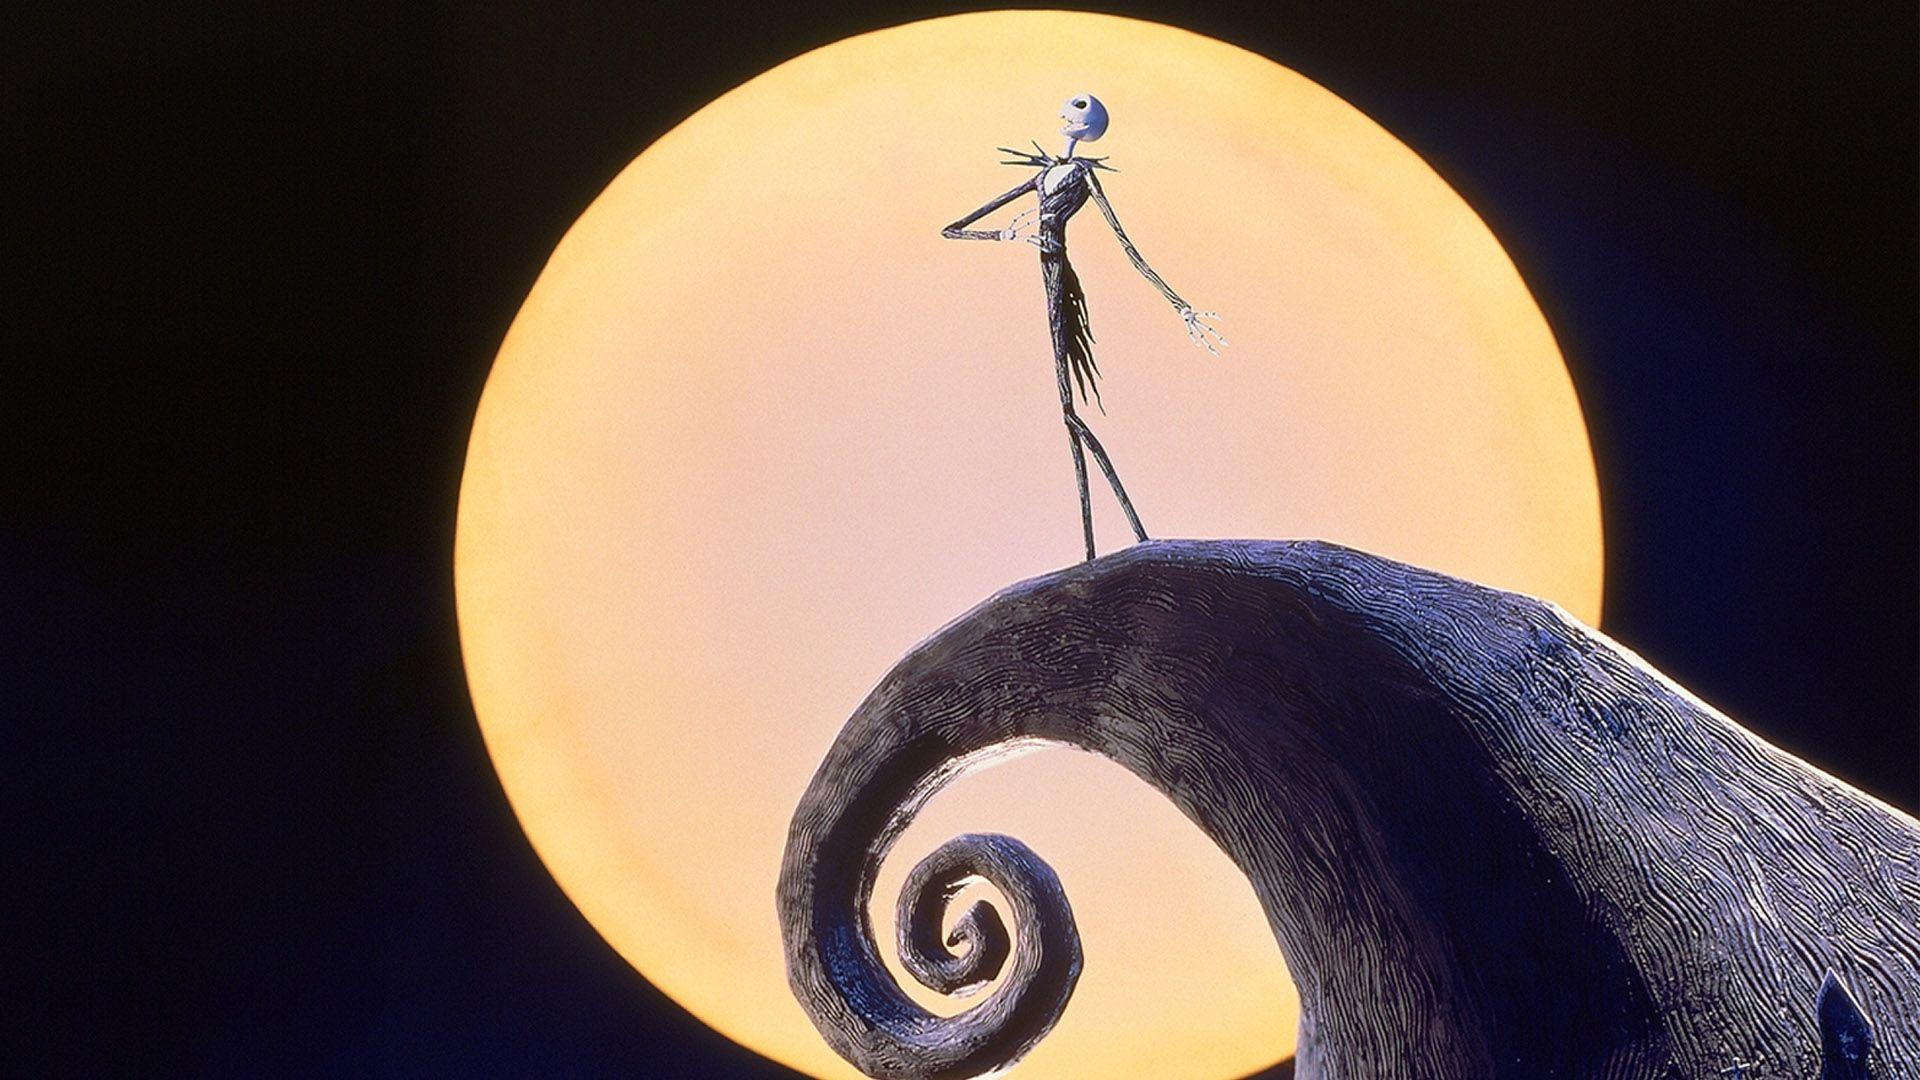 Xmas Stuff For > Nightmare Before Christmas Wallpapers 1920x1080